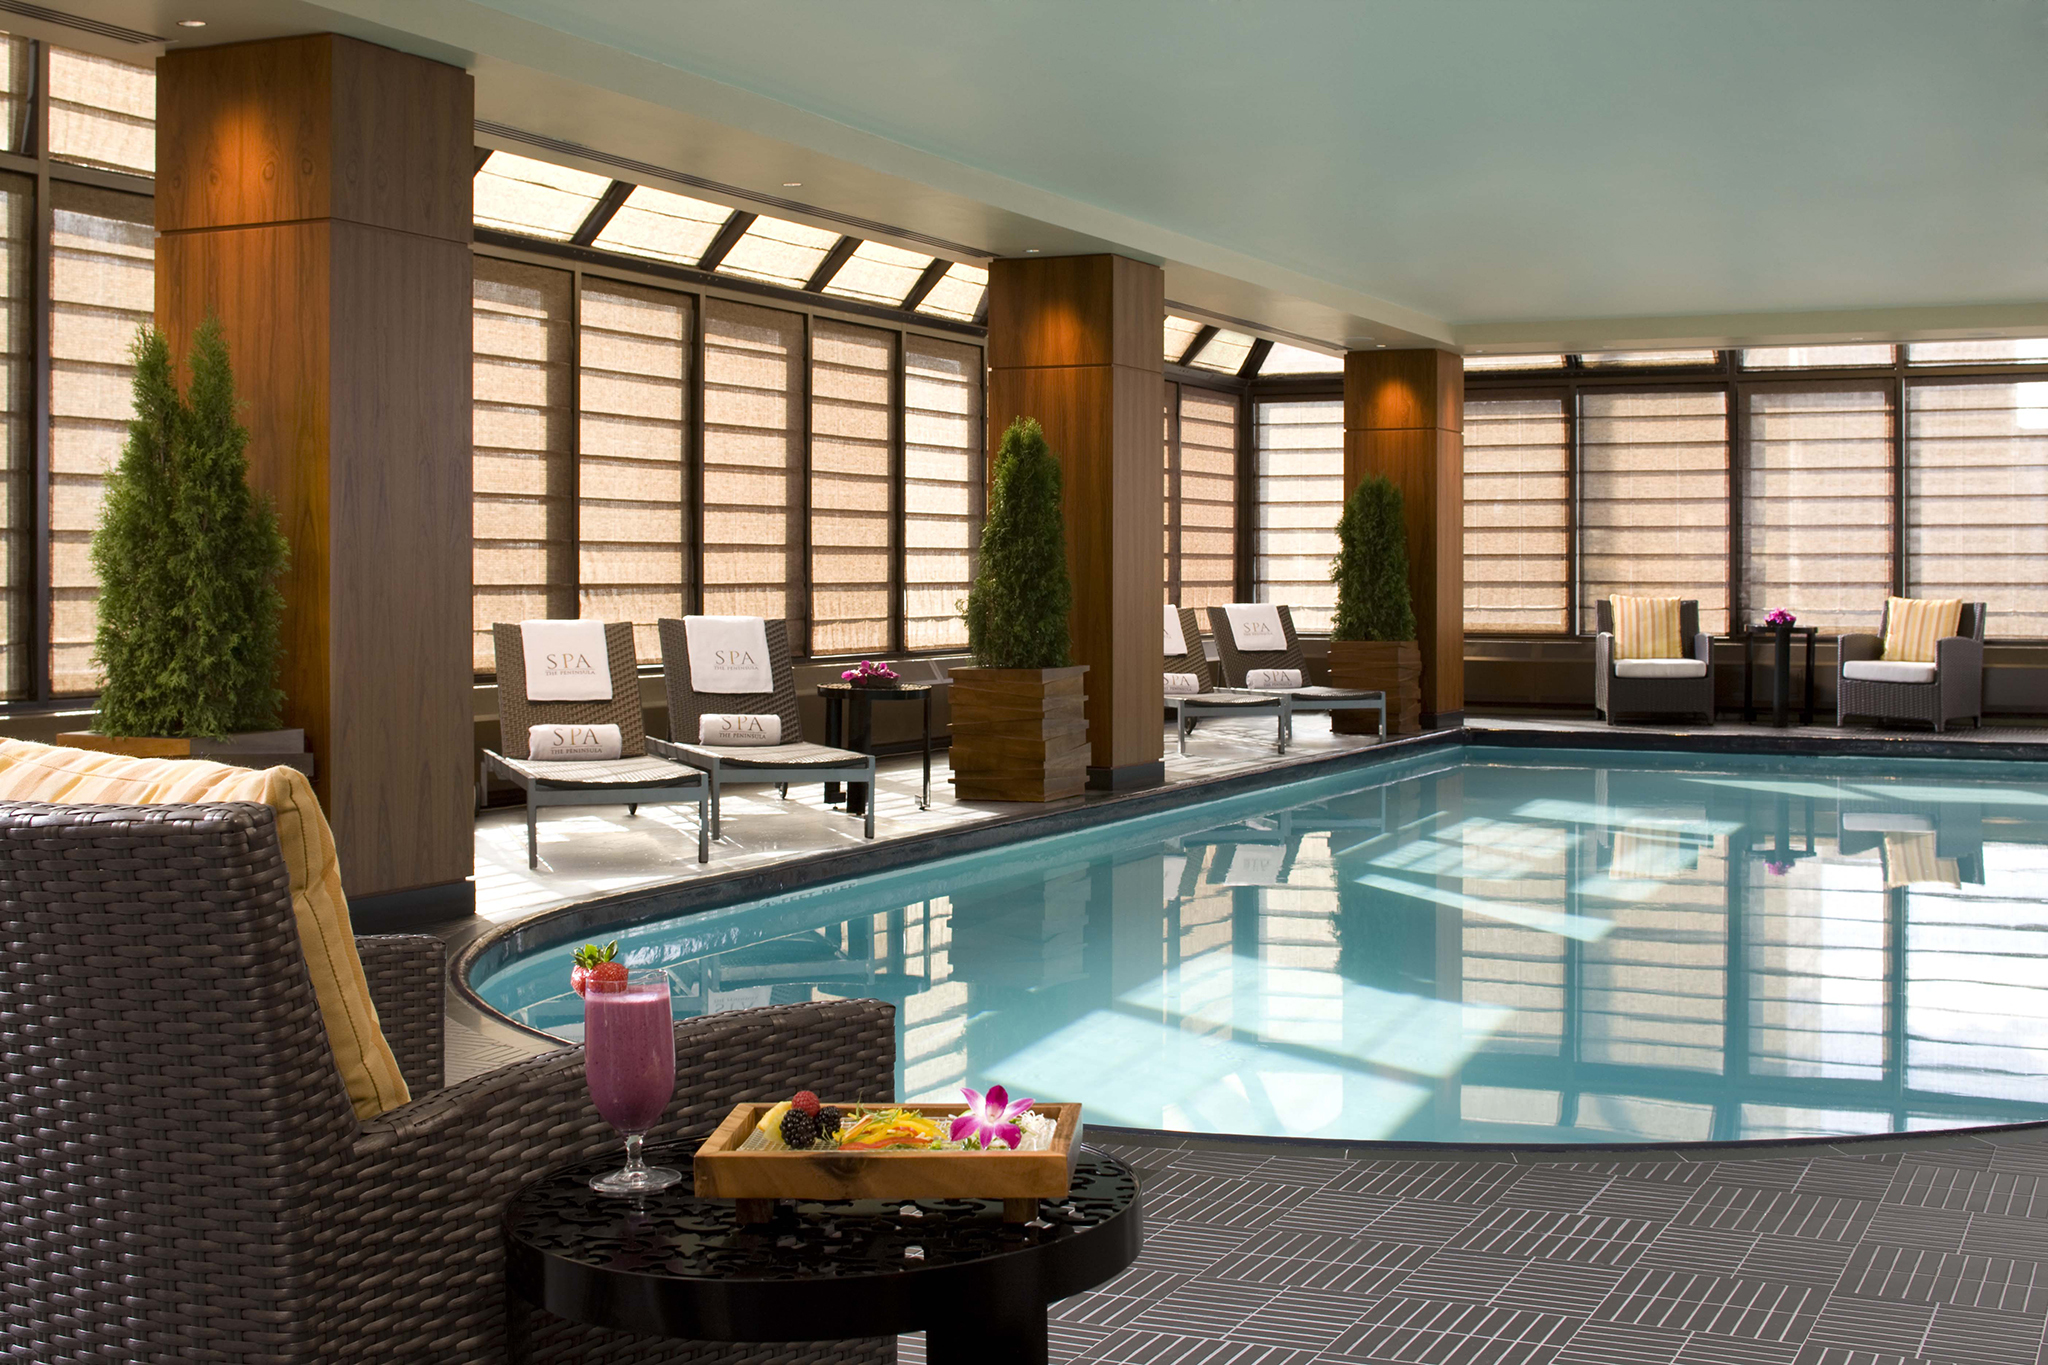 Hotel indoor pool  Best hotels with indoor pools in spas or on rooftops in NYC